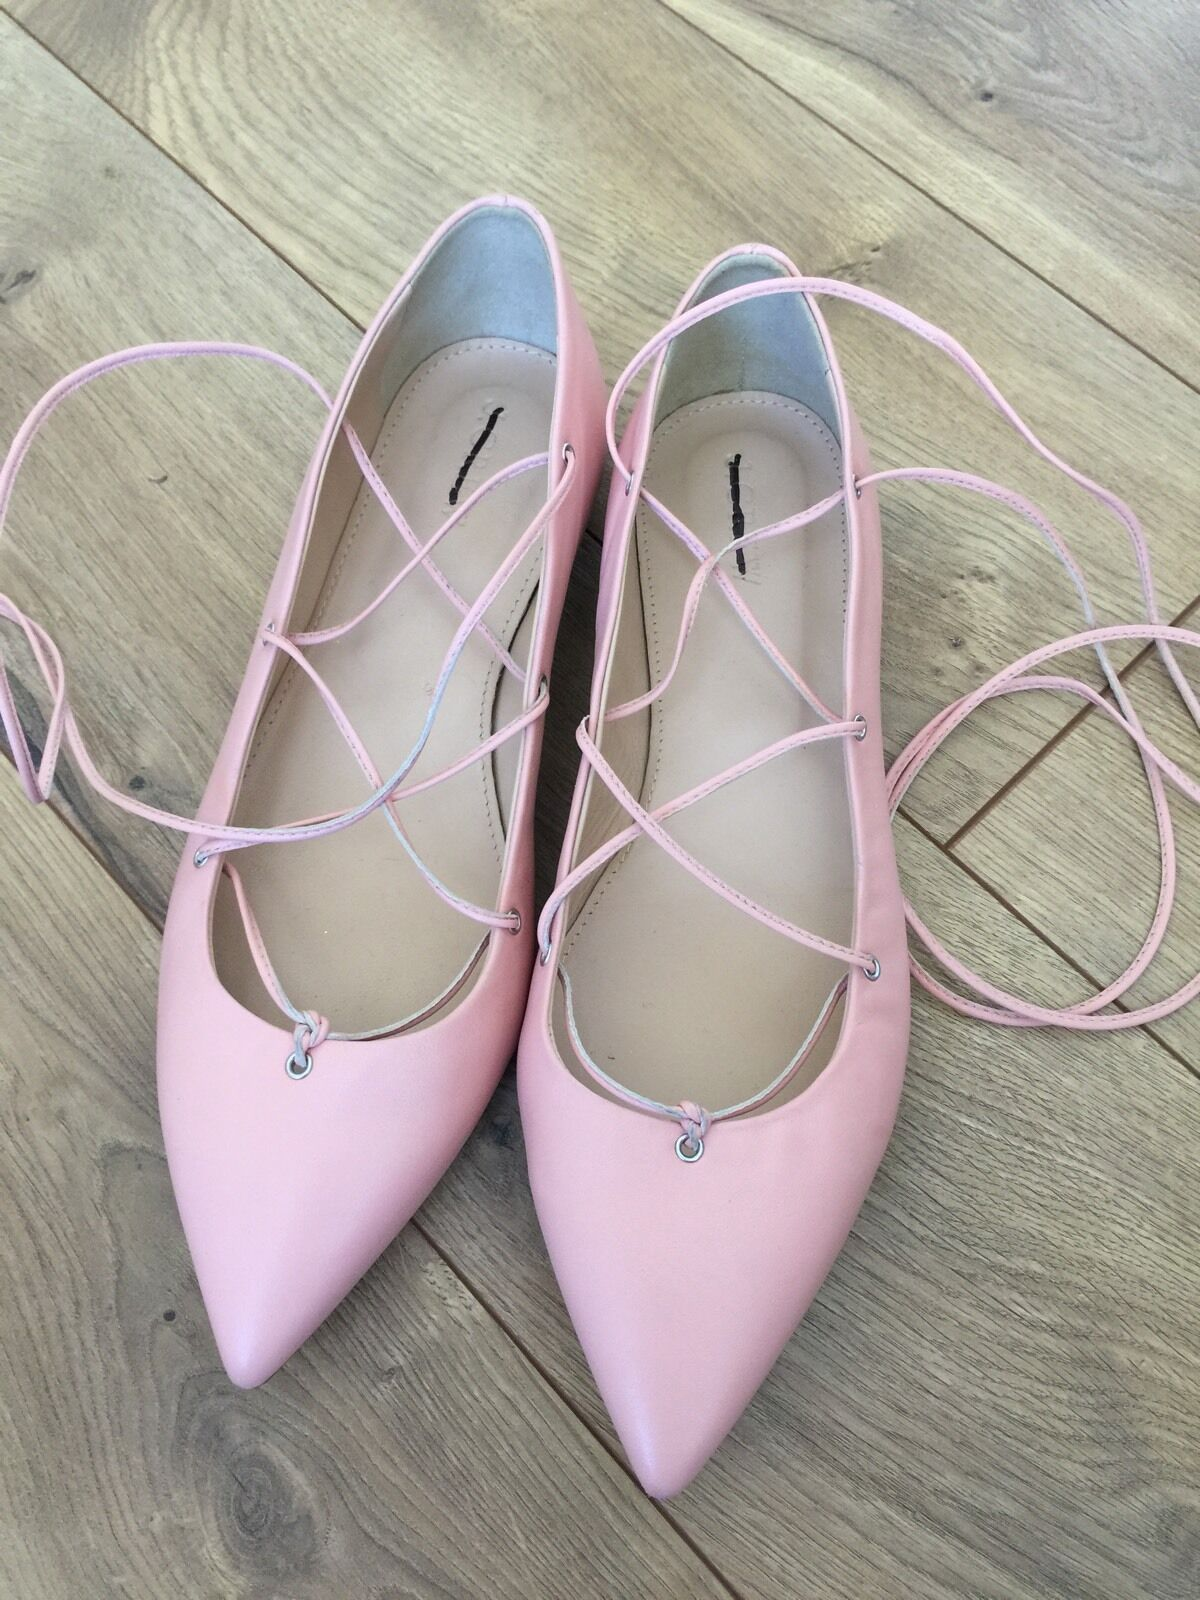 J J J CREW LEATHER LACE UP BALLET FLATS 158 SHOE SZ 9 PAGODA PEACH F0281 b2c49f